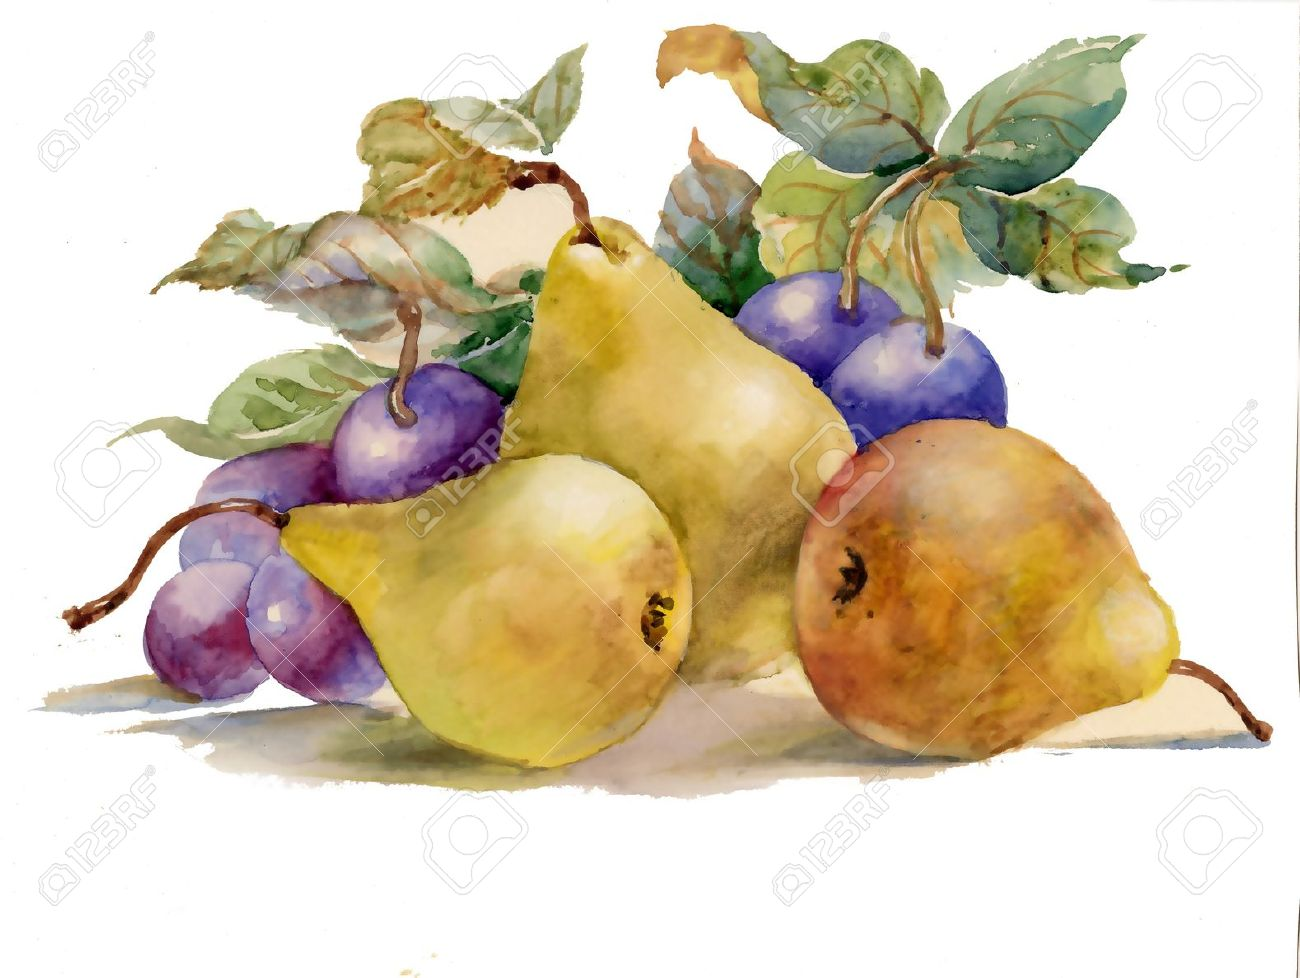 Watercolor Paintings Of Fruit Watercolor painting pears and